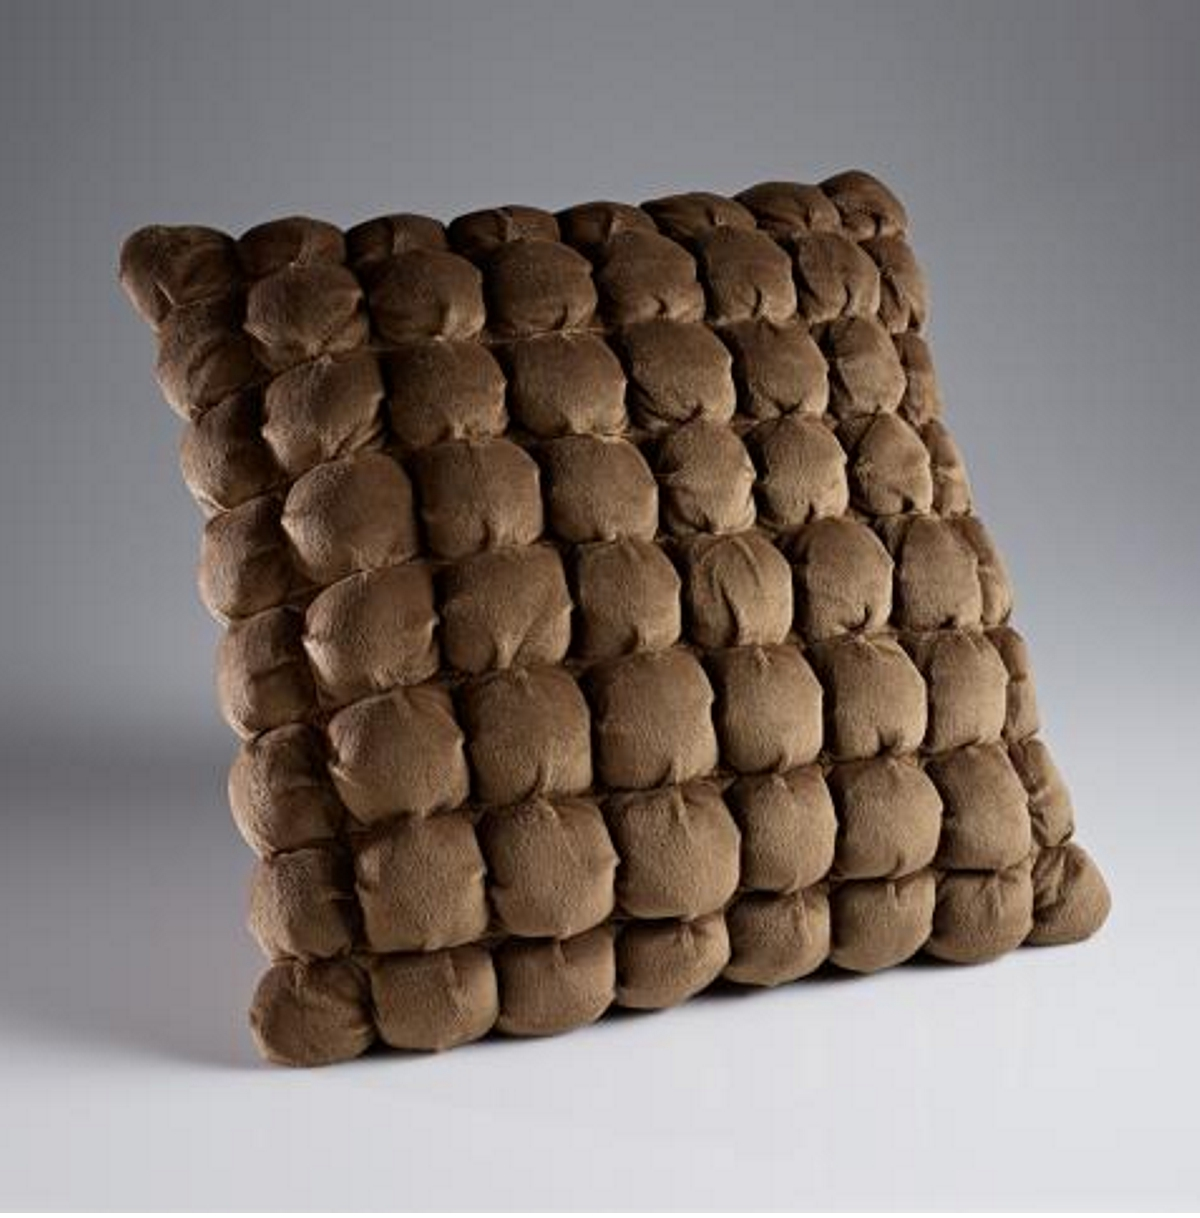 Dreamweavers Italian Square Cushion 45cm x 45cm (18 x 18 inches) Chocolate